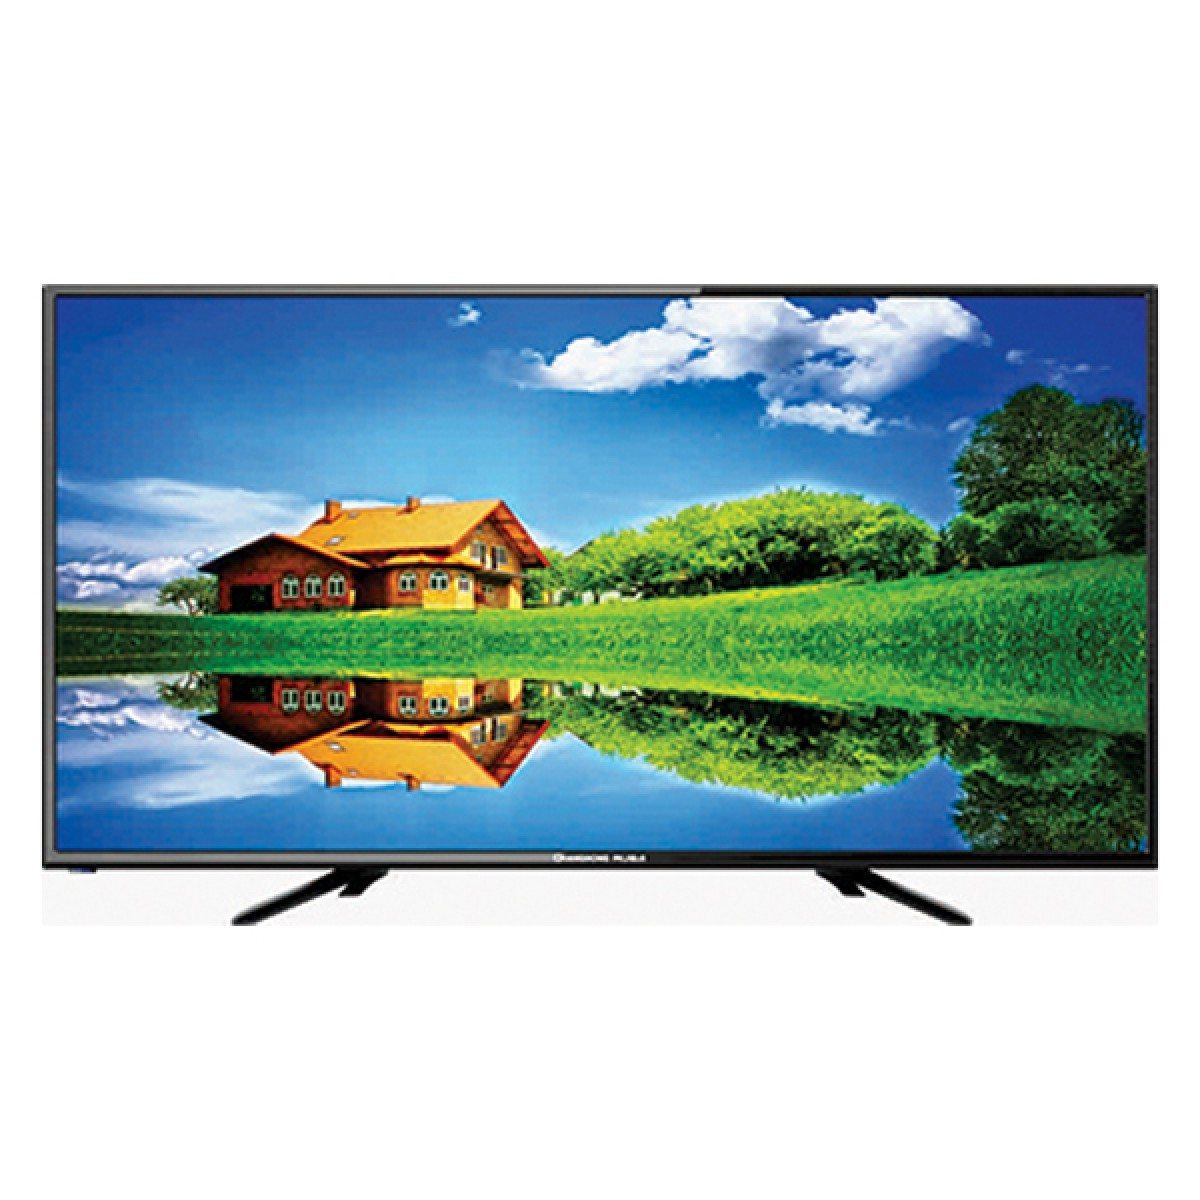 hight resolution of changhong ruba 32 led tv price in pakistan buy changhong ruba 32 full hd led tv led32e3600 ishopping pk